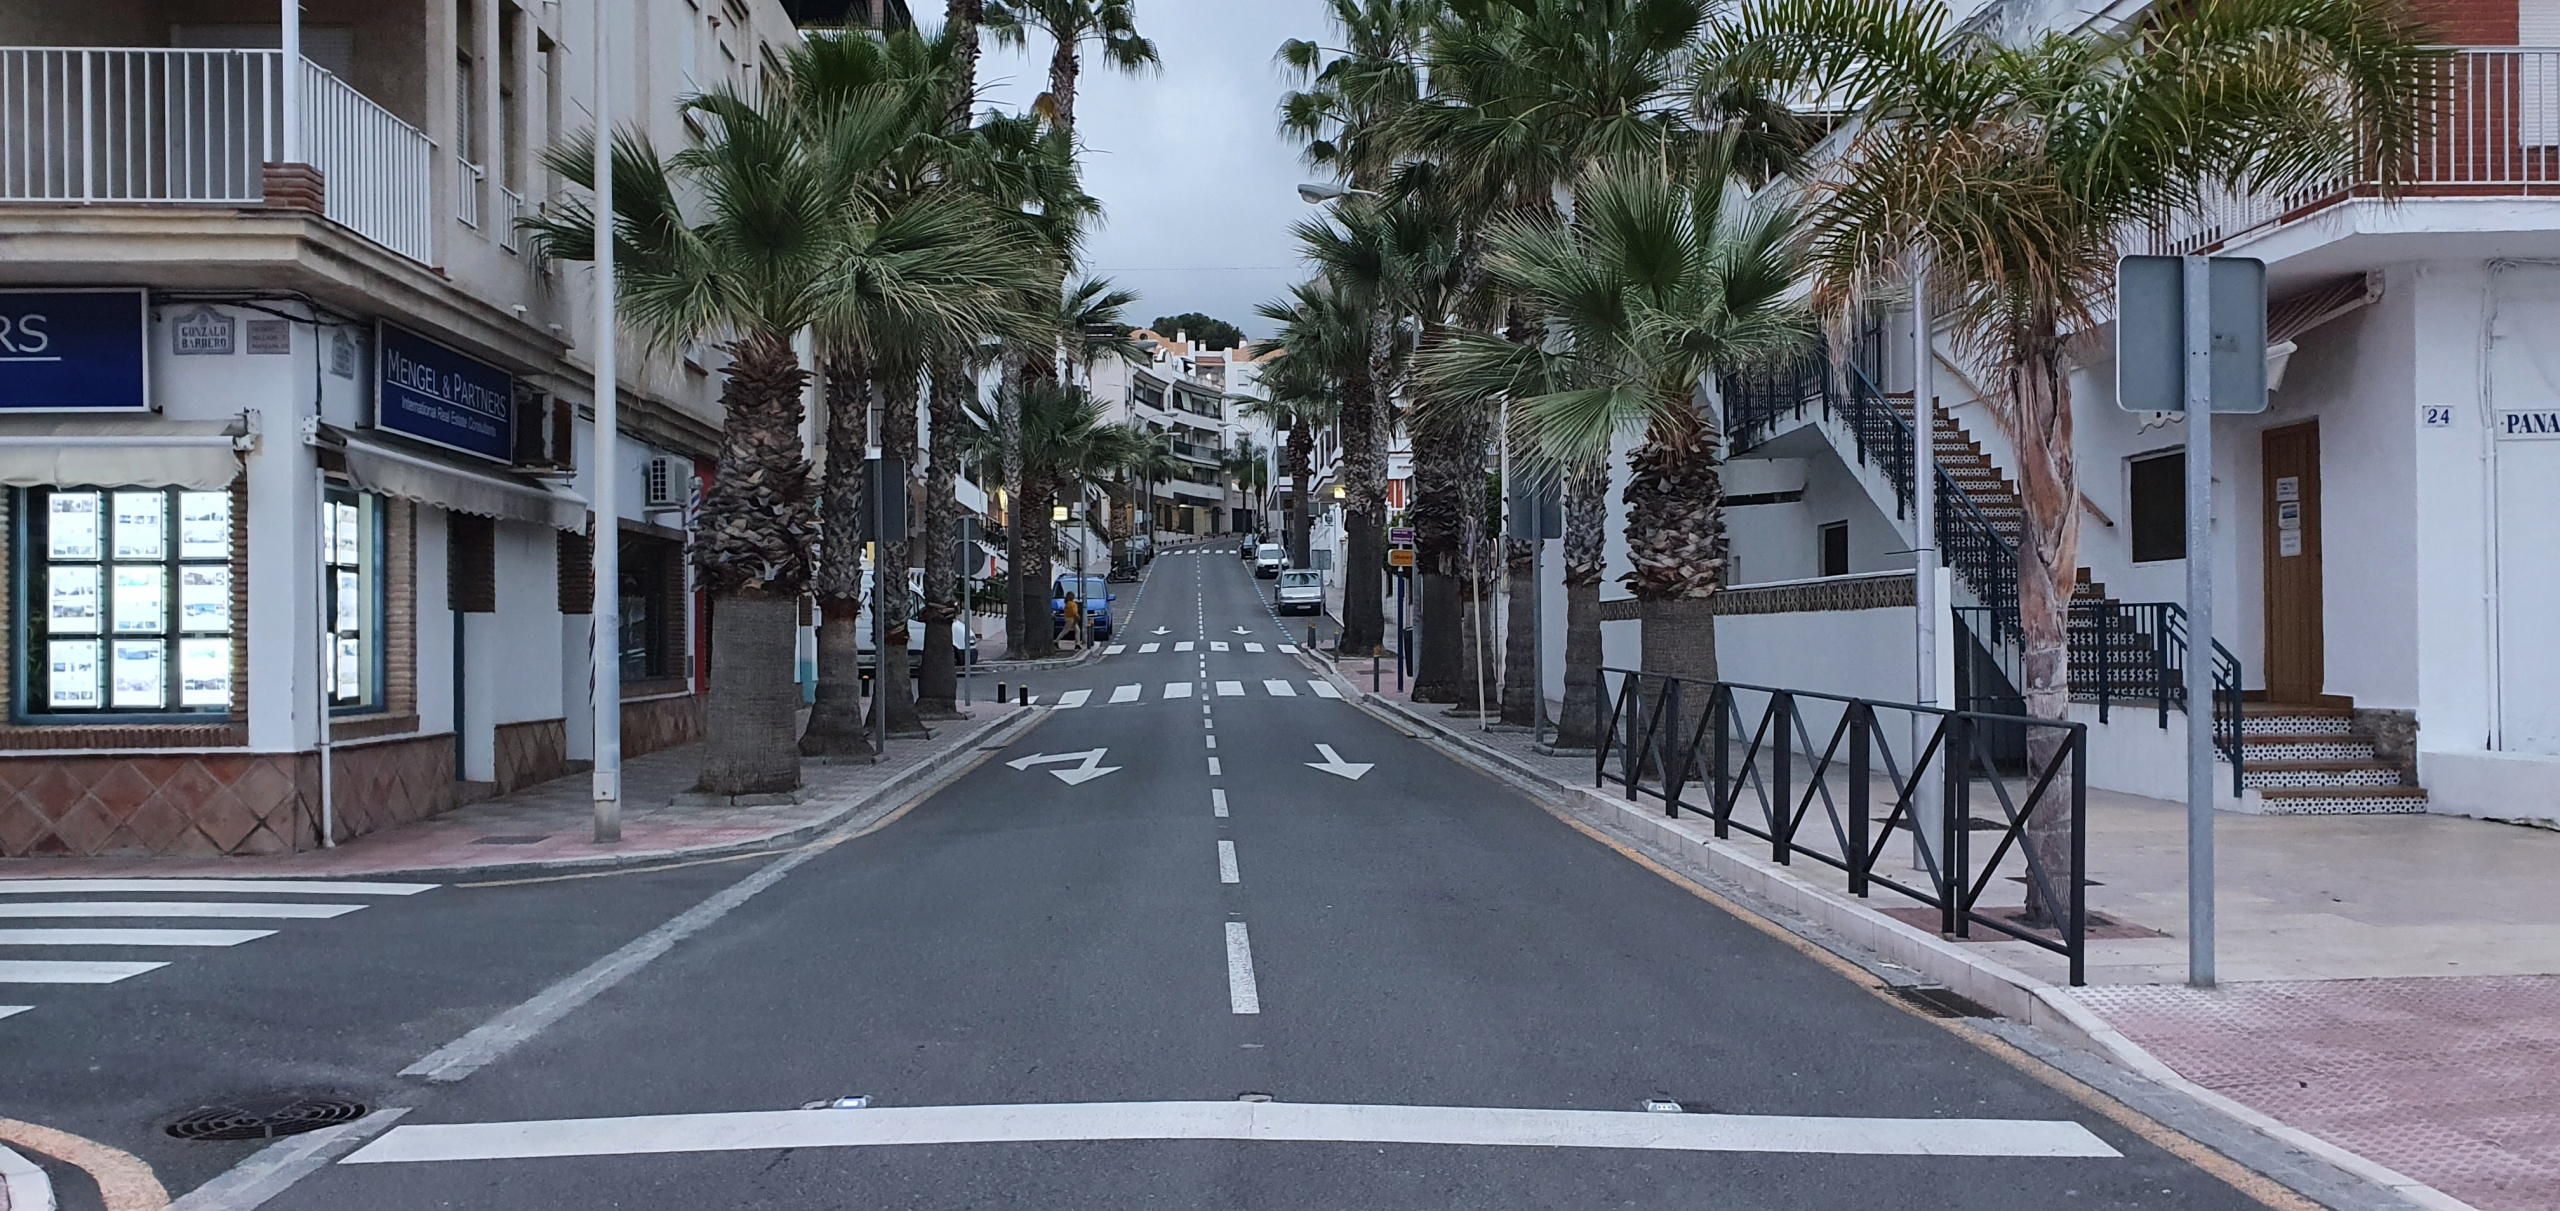 street with palm trees